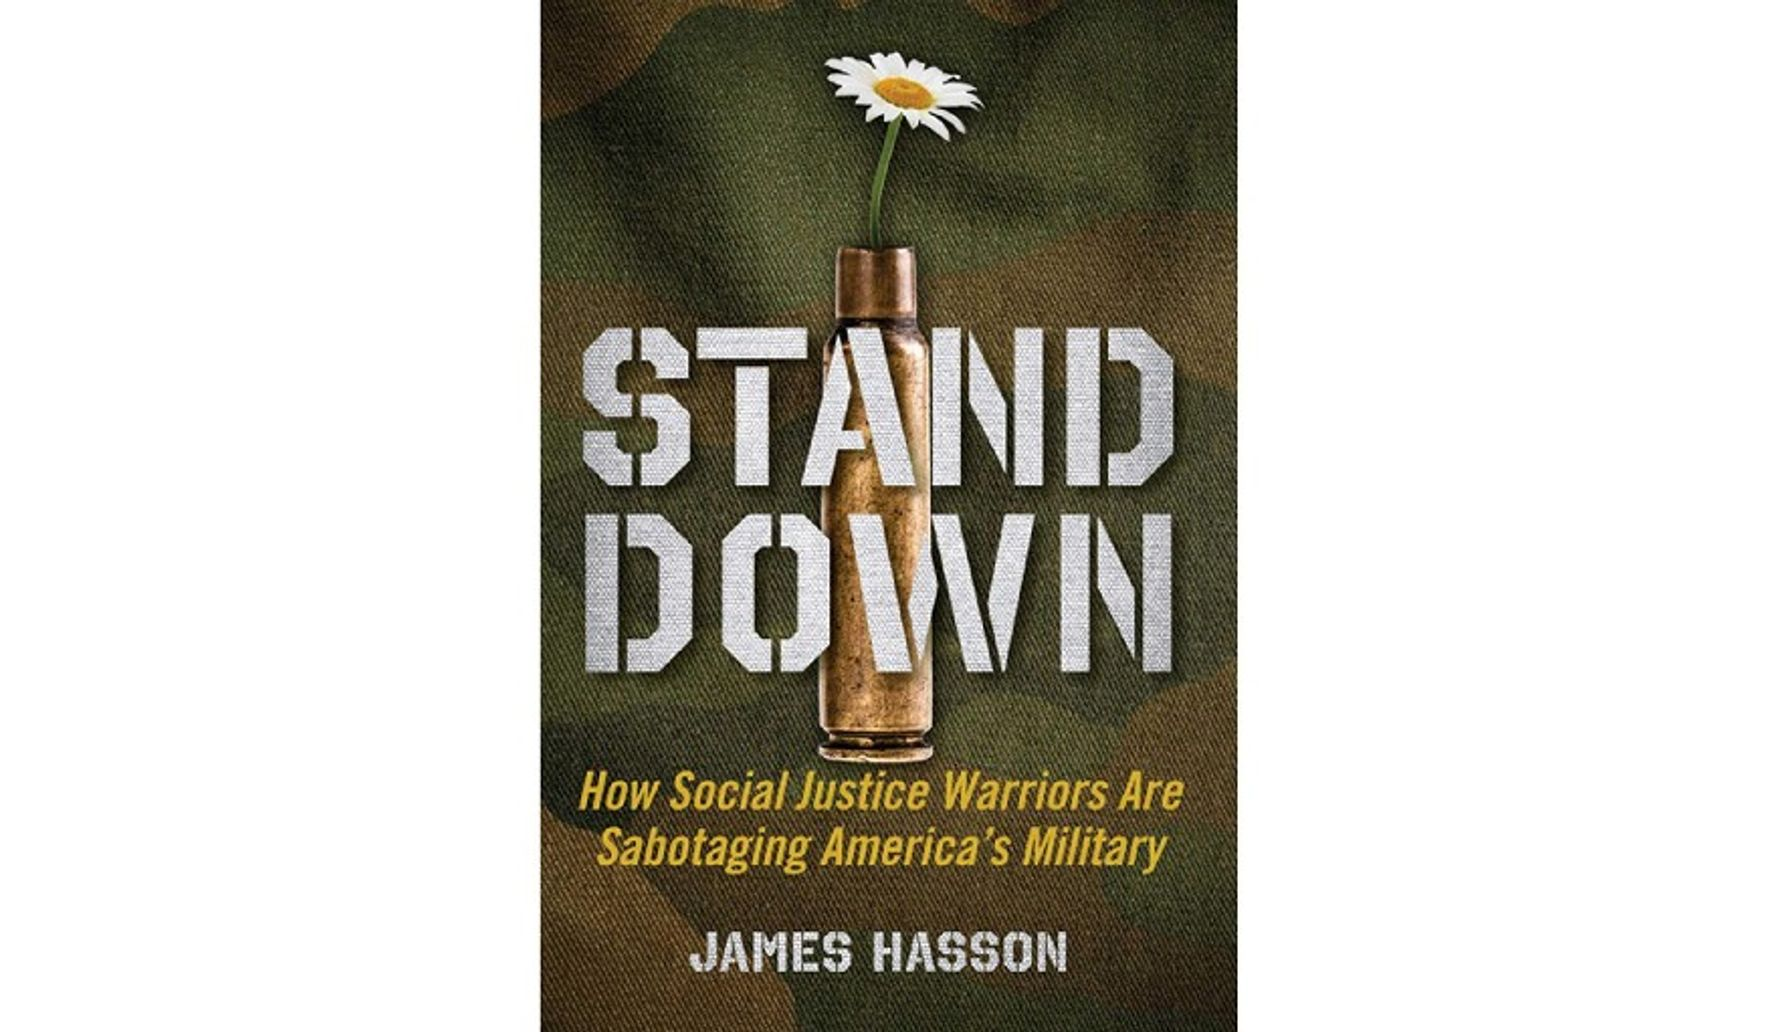 BOOK REVIEW: 'Stand Down'